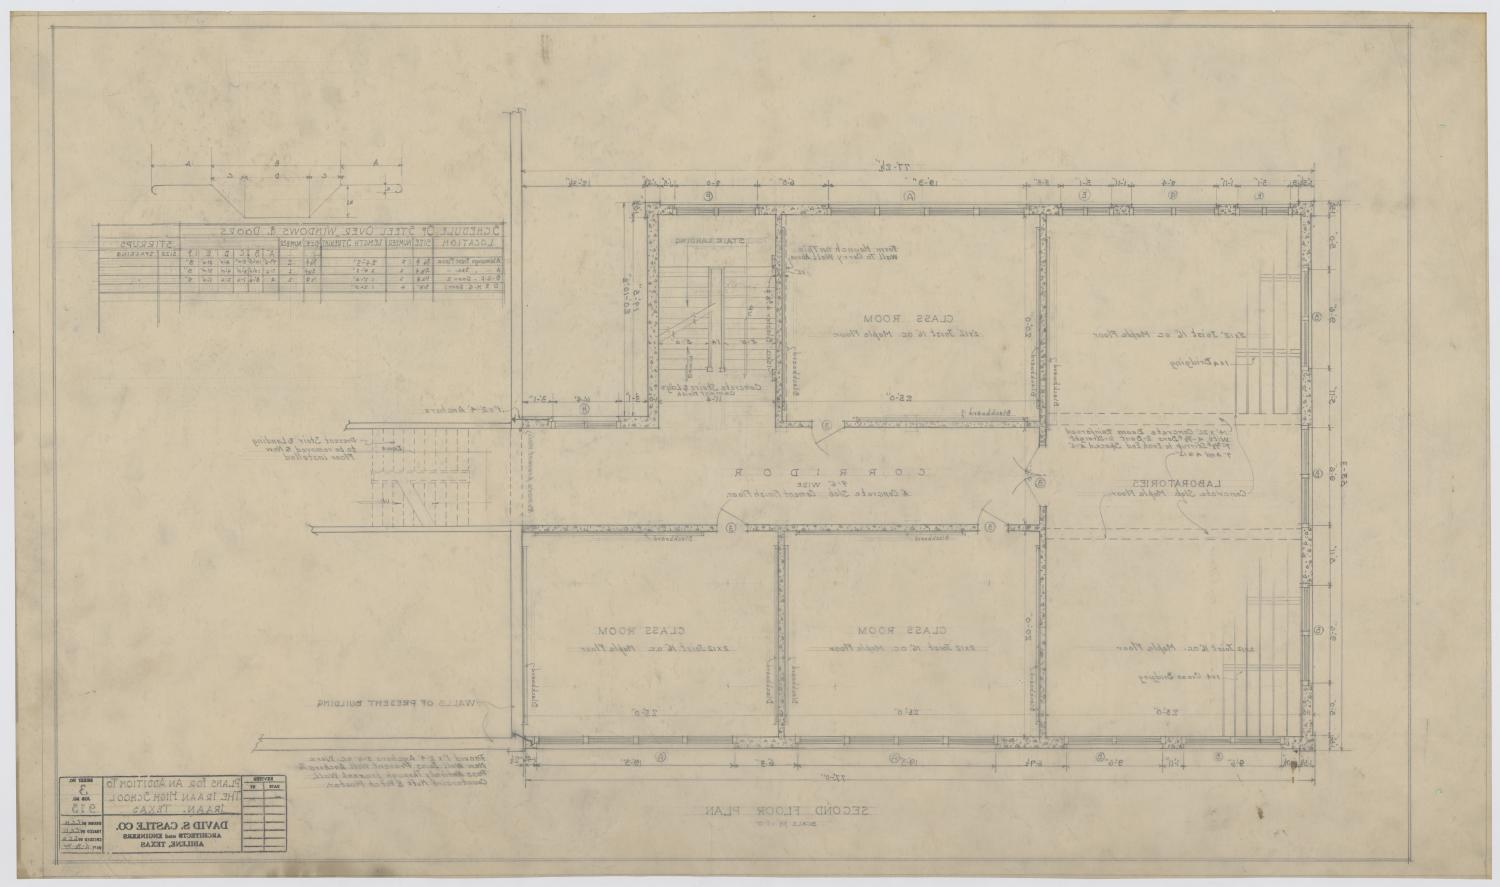 Iraan High School Addition: Second Floor Plan                                                                                                      [Sequence #]: 2 of 2